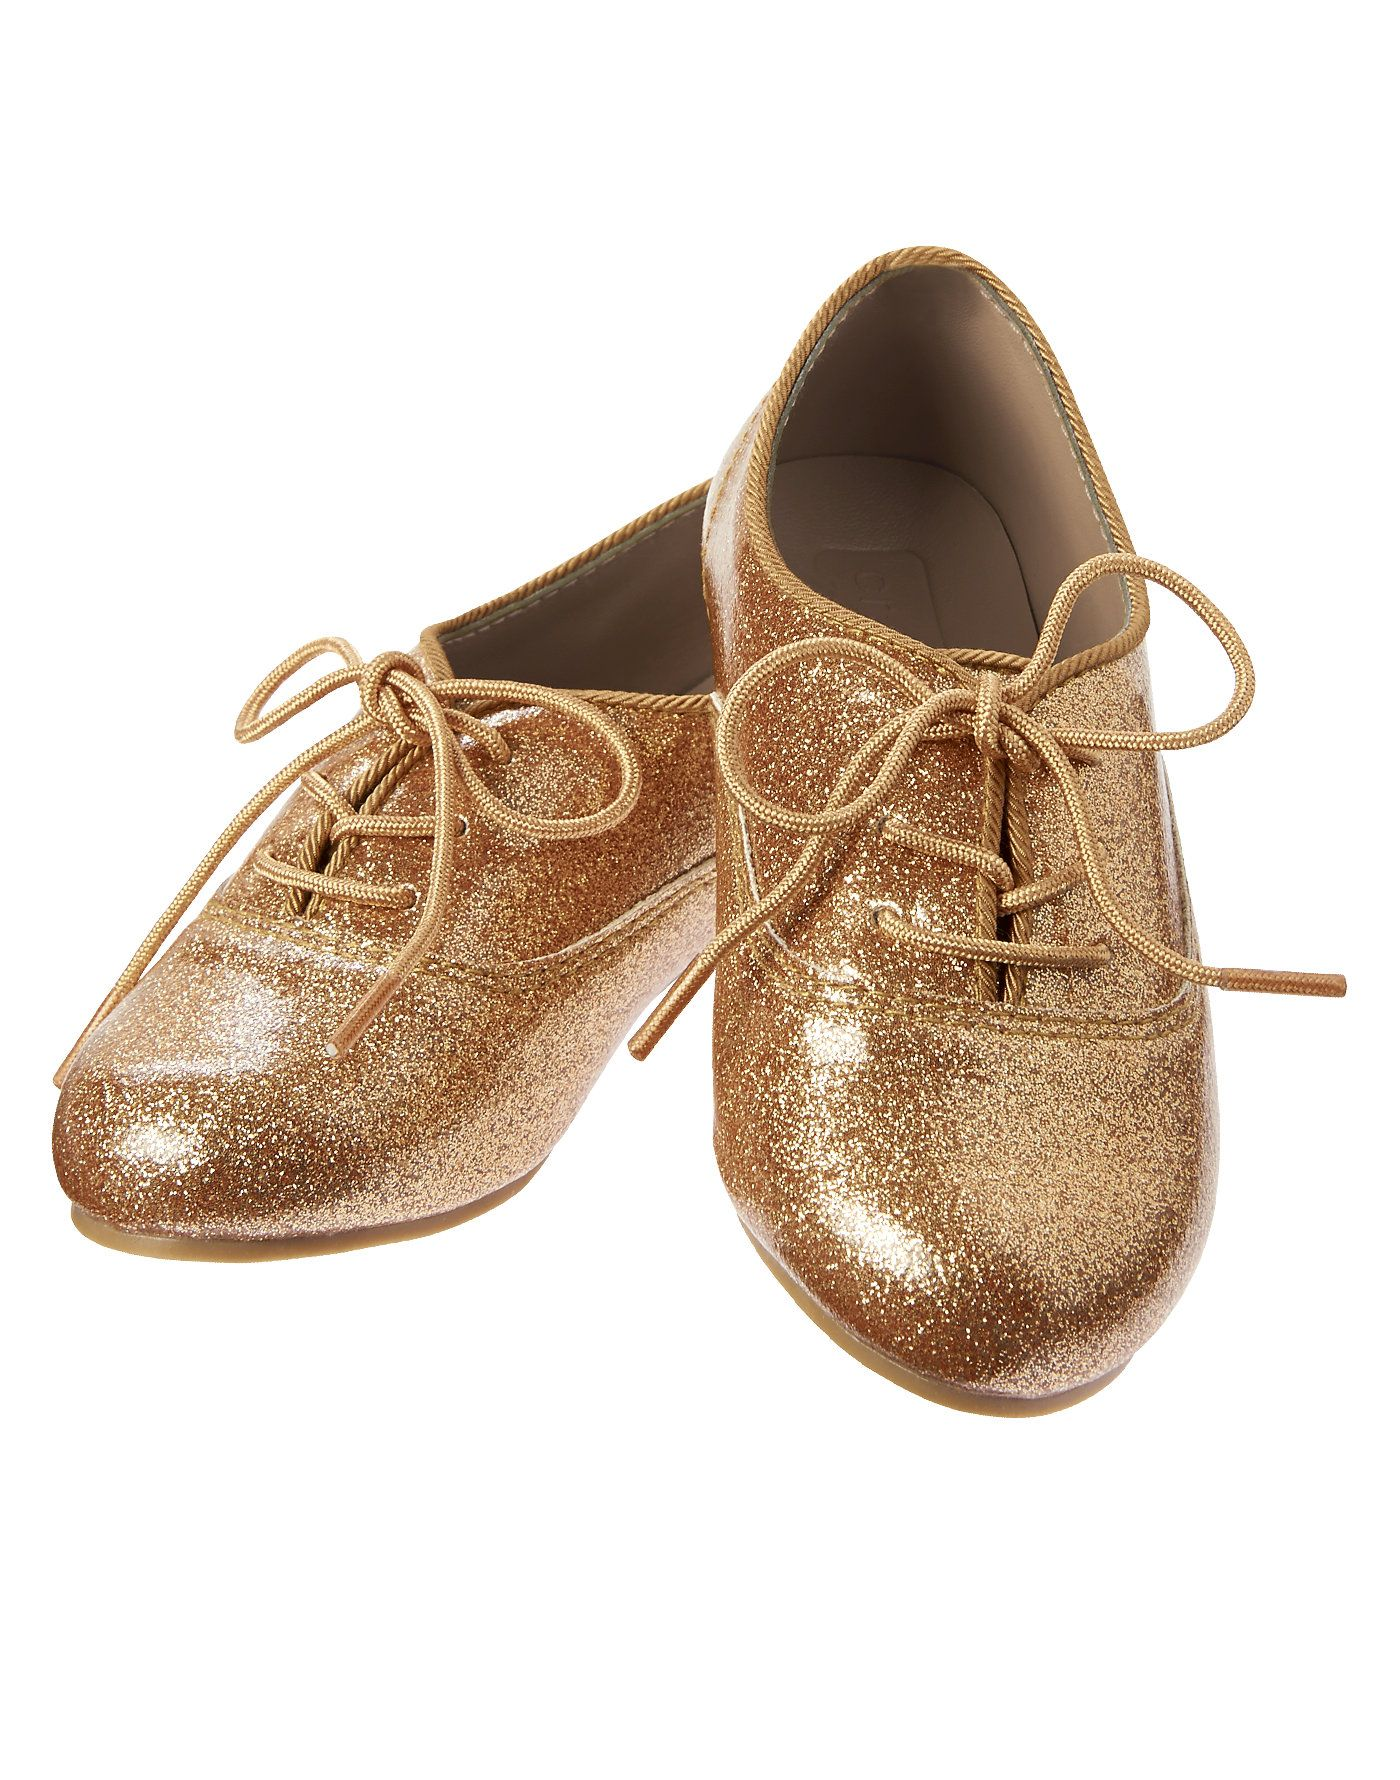 Sparkle Oxford Shoes | Girls oxford shoes, Little girl shoes, Girls oxfords